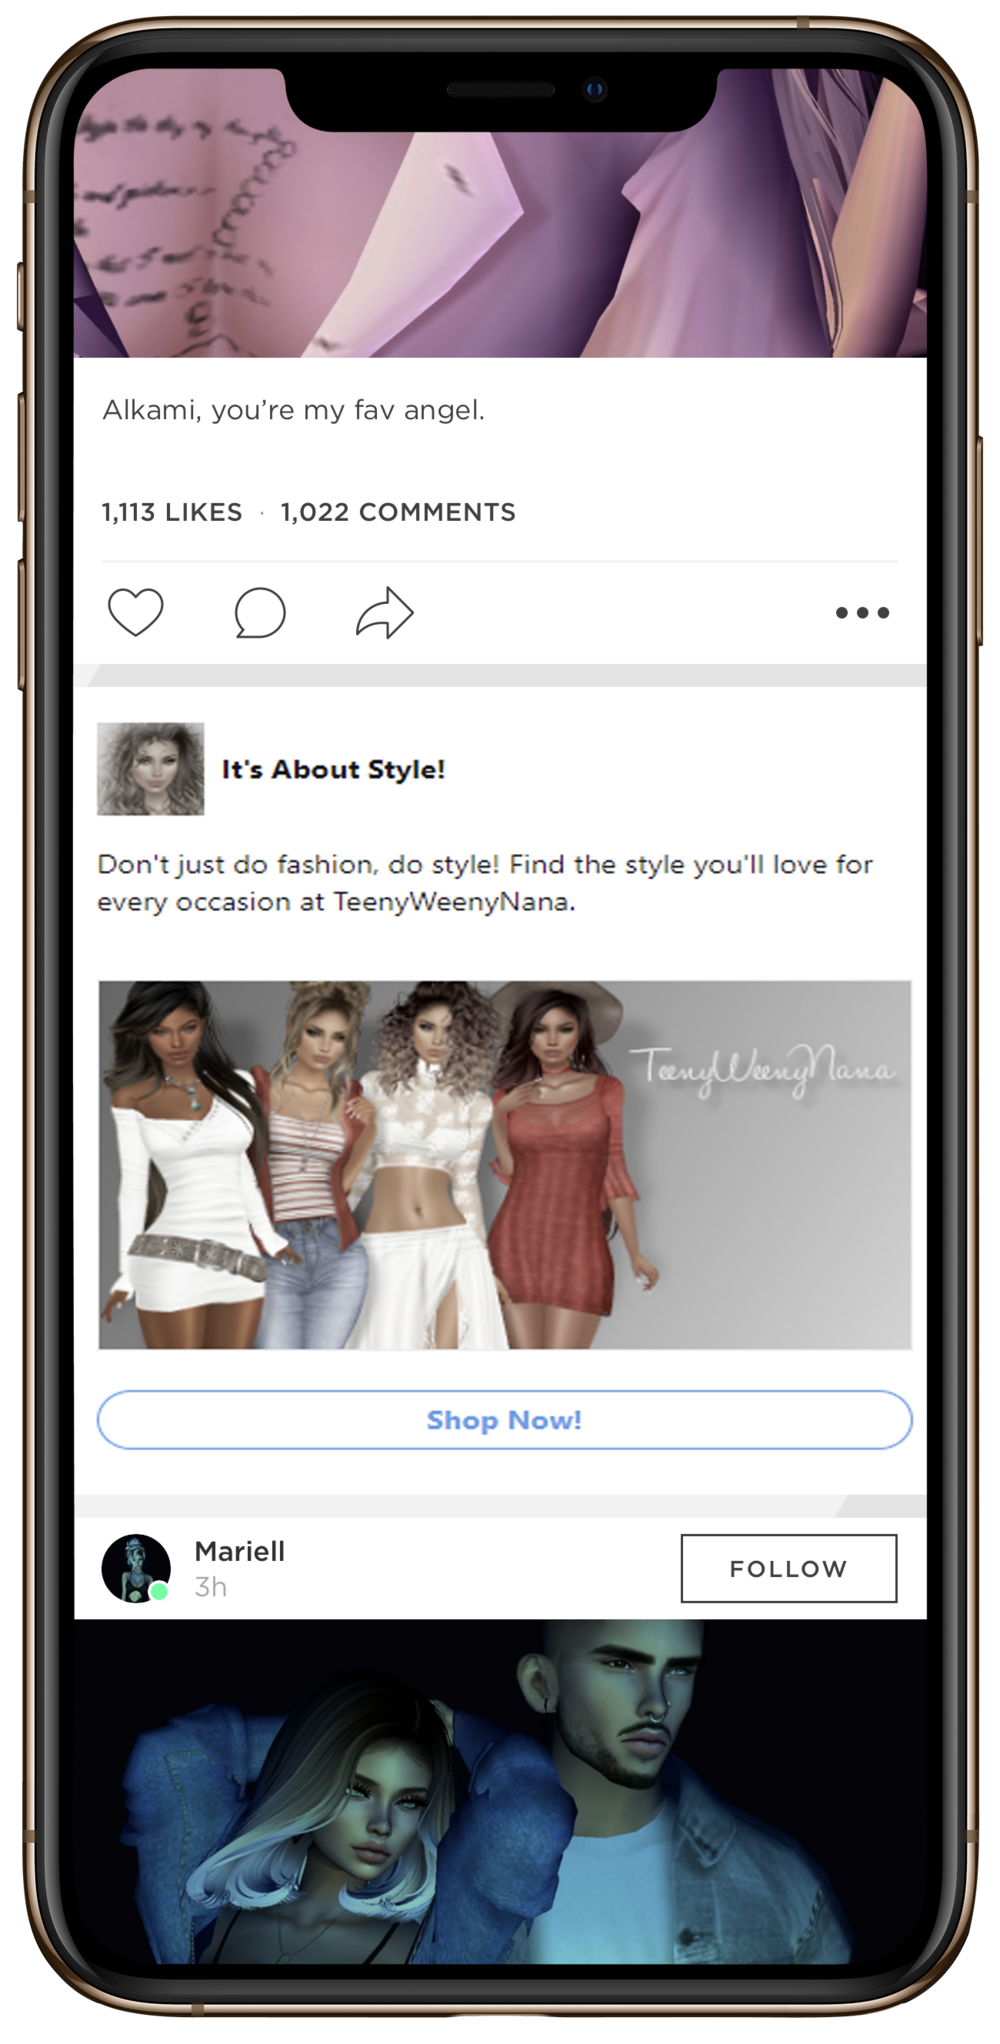 IMVU Native Ads appear on our mobile apps (iOS and Android) in the Feed and have a simple and familiar format that immediately draws attention.